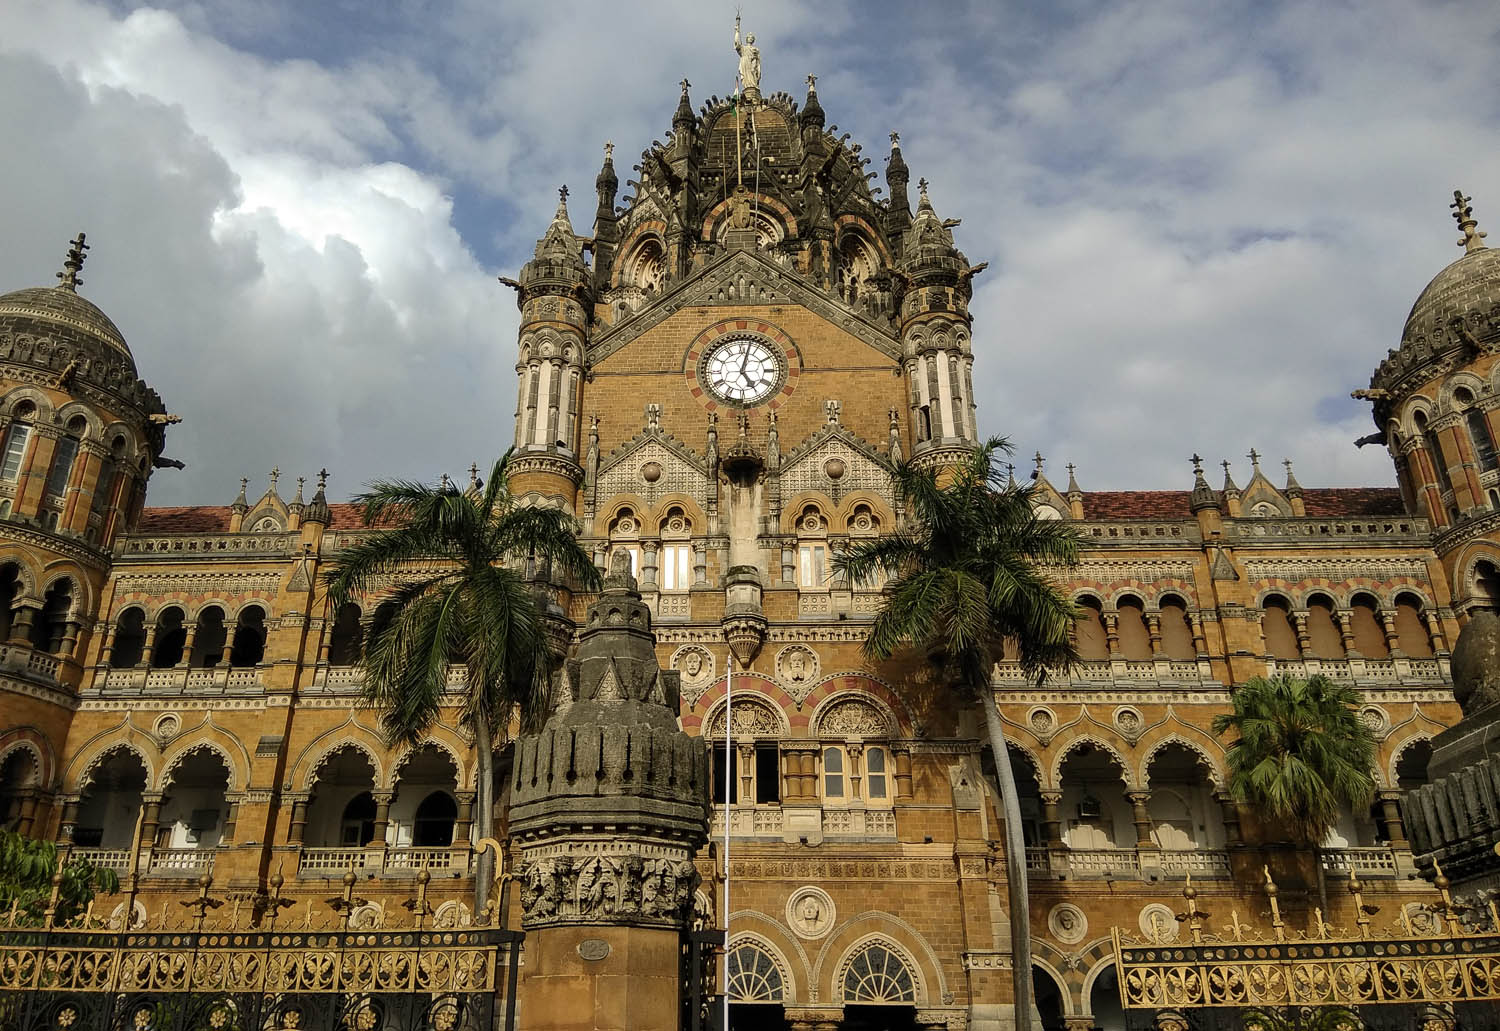 The station's ornate central clock tower. Image:     Sushil Sam